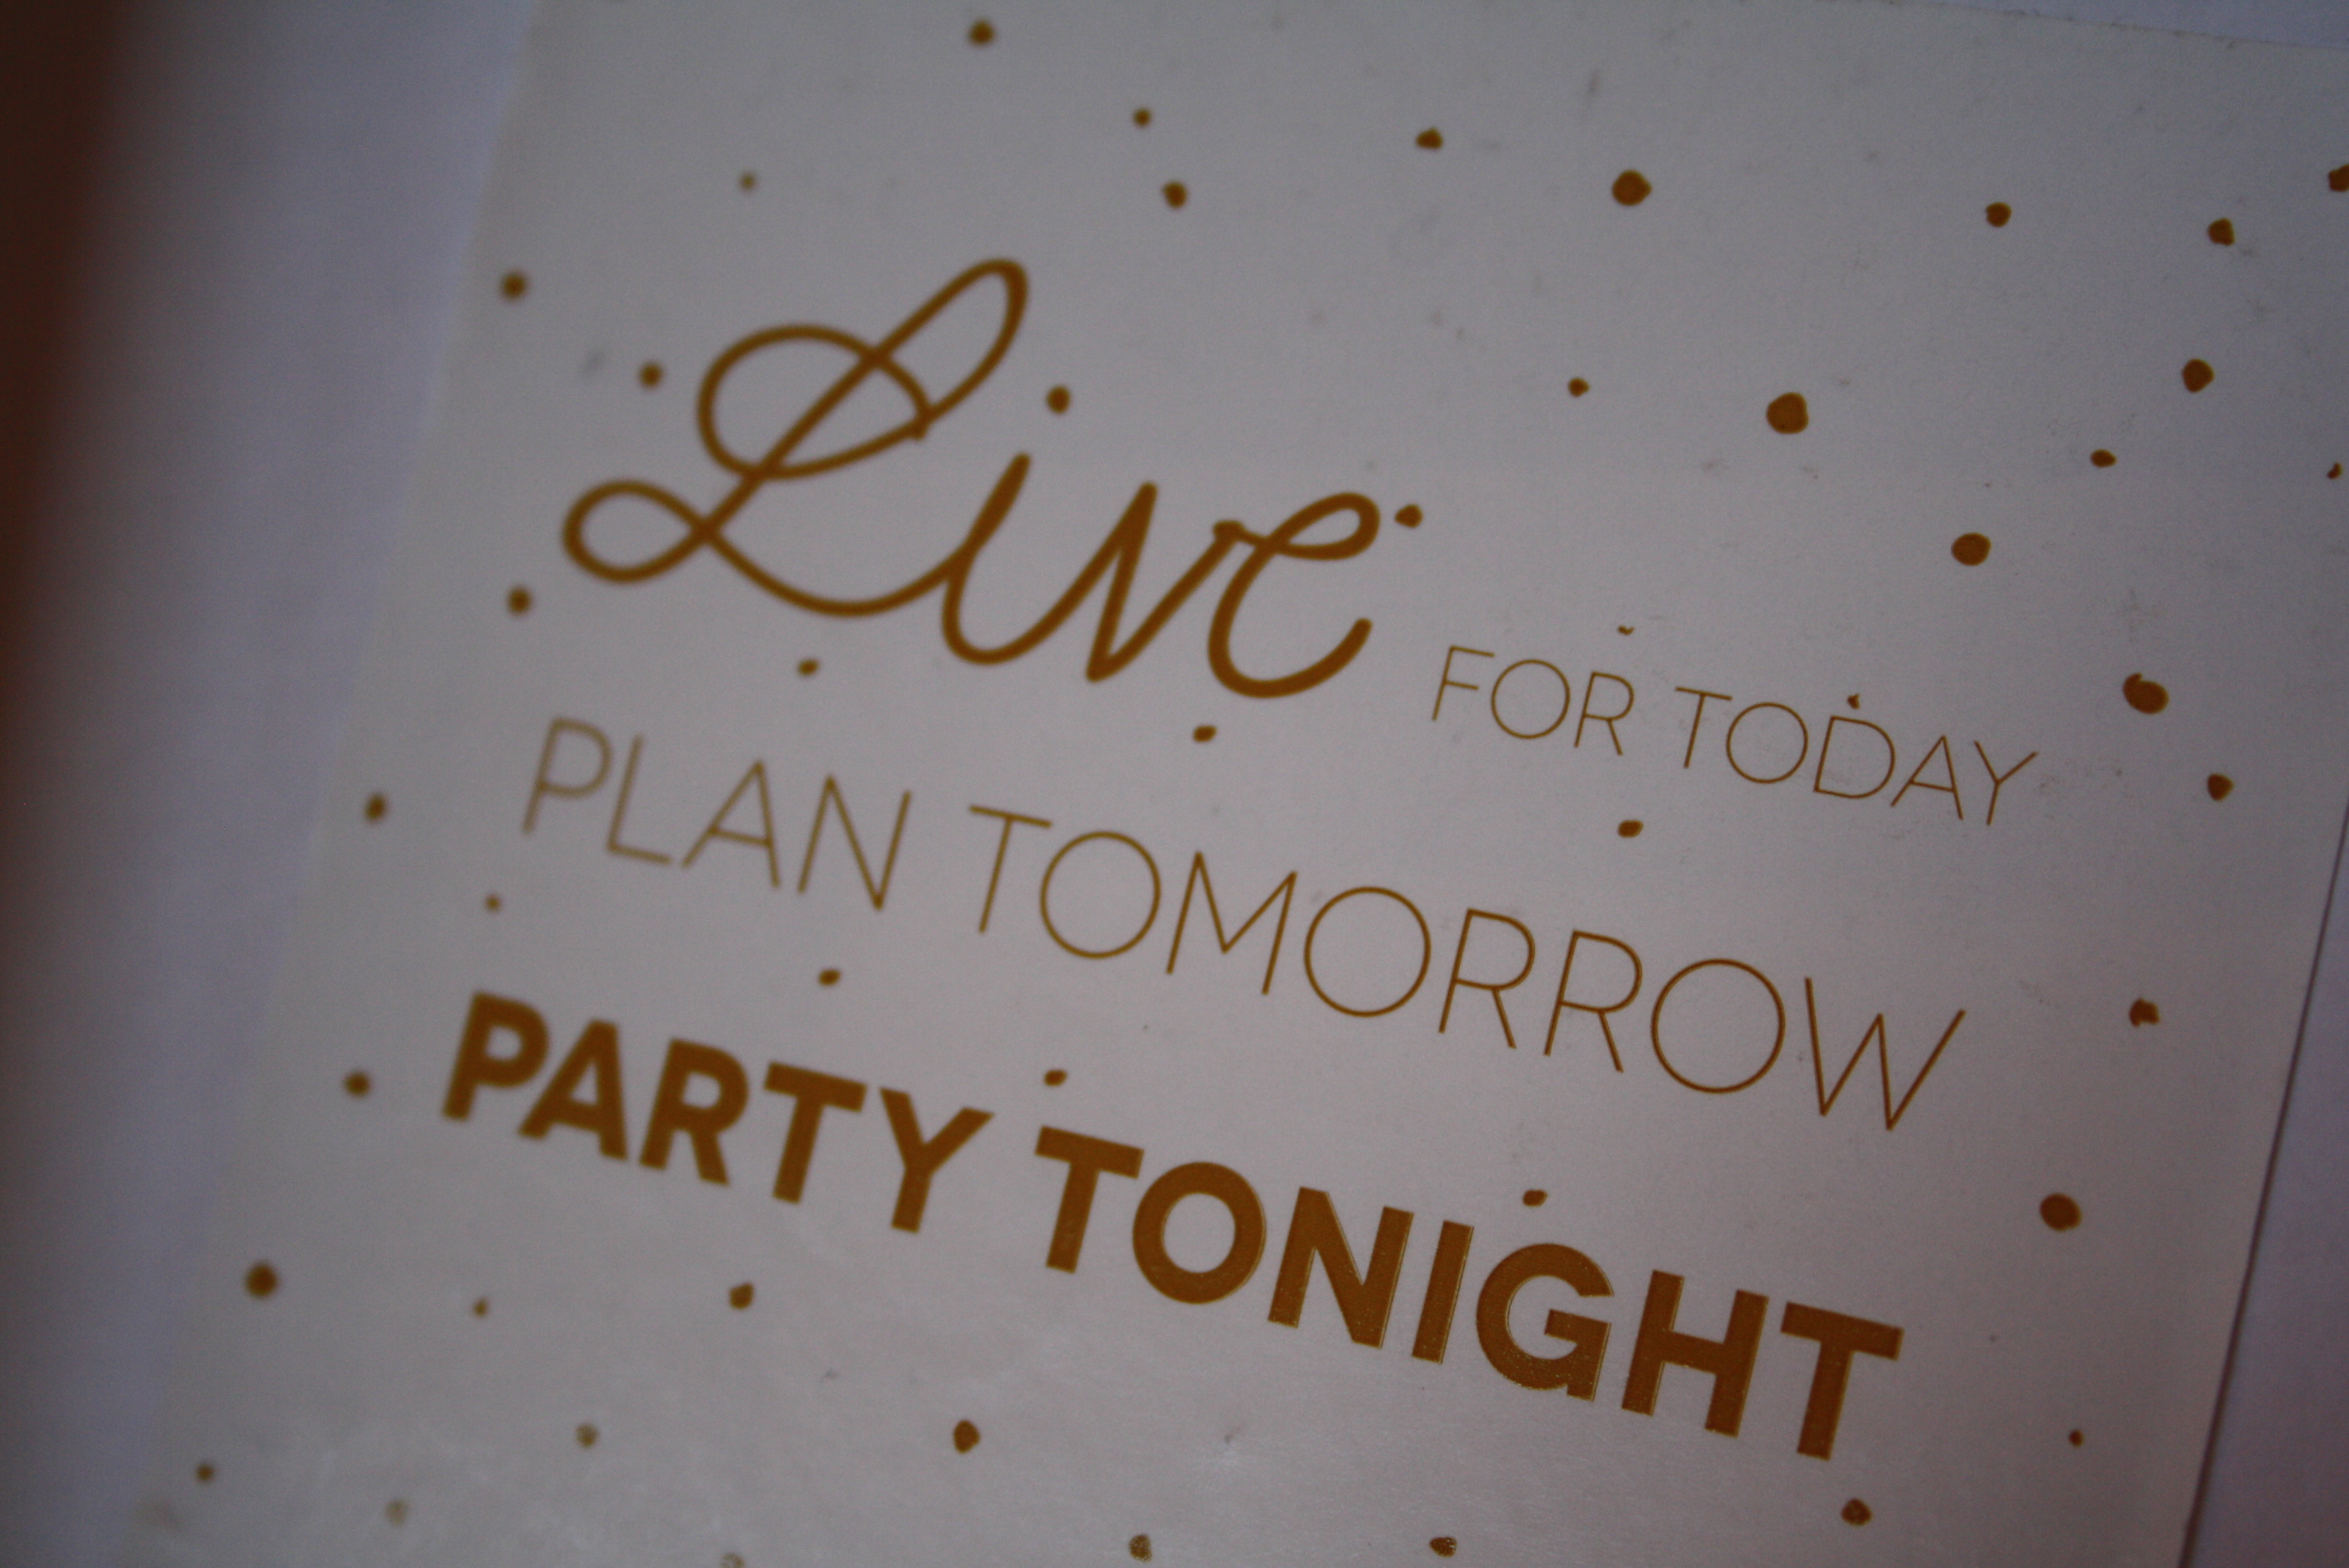 """Live for today, plan tomorrow, party tonight"""